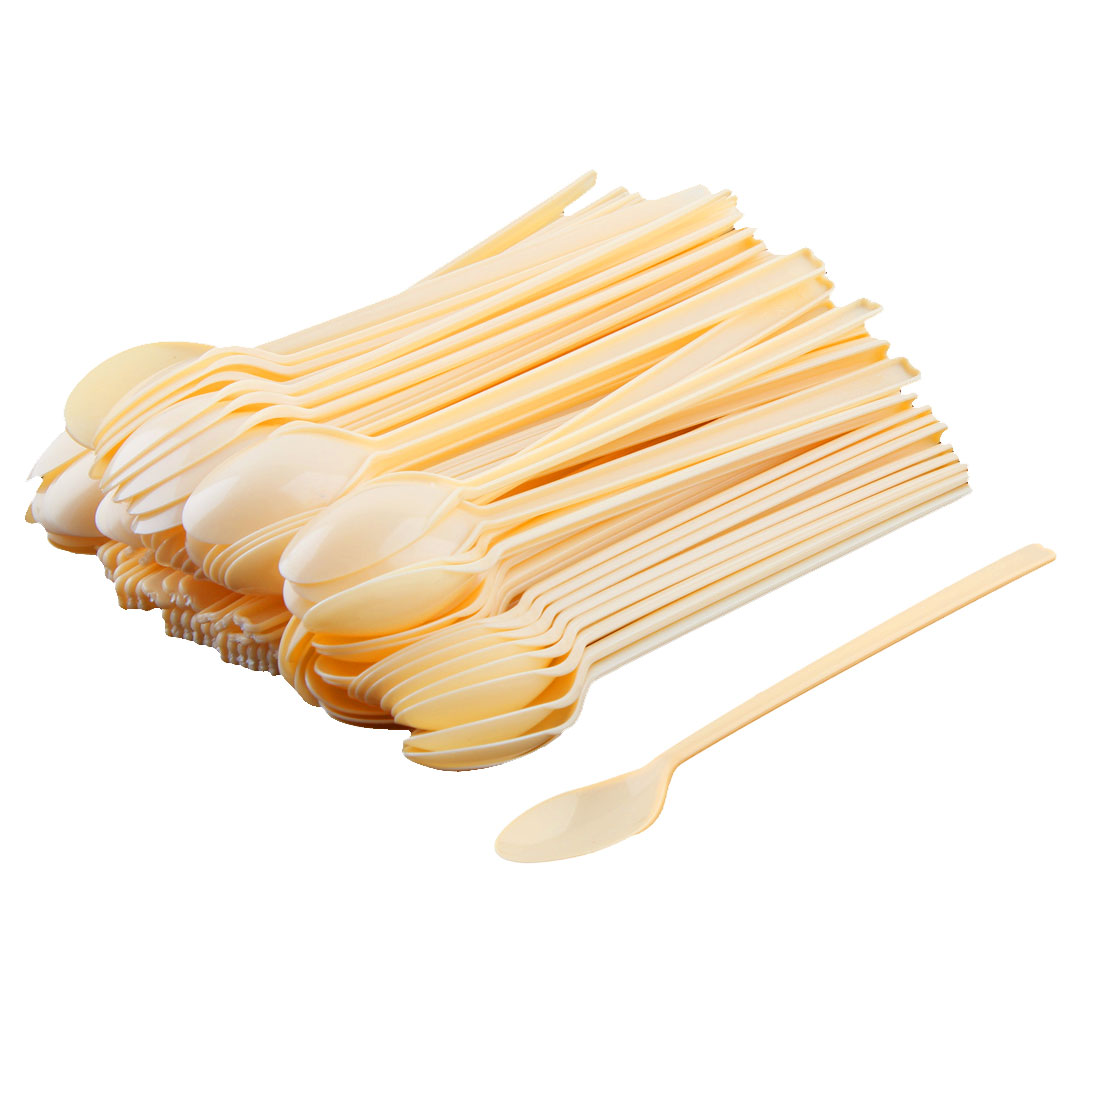 Home Plastic Long-handled Disposable Jelly Dessert Pudding Spoons 100pcs